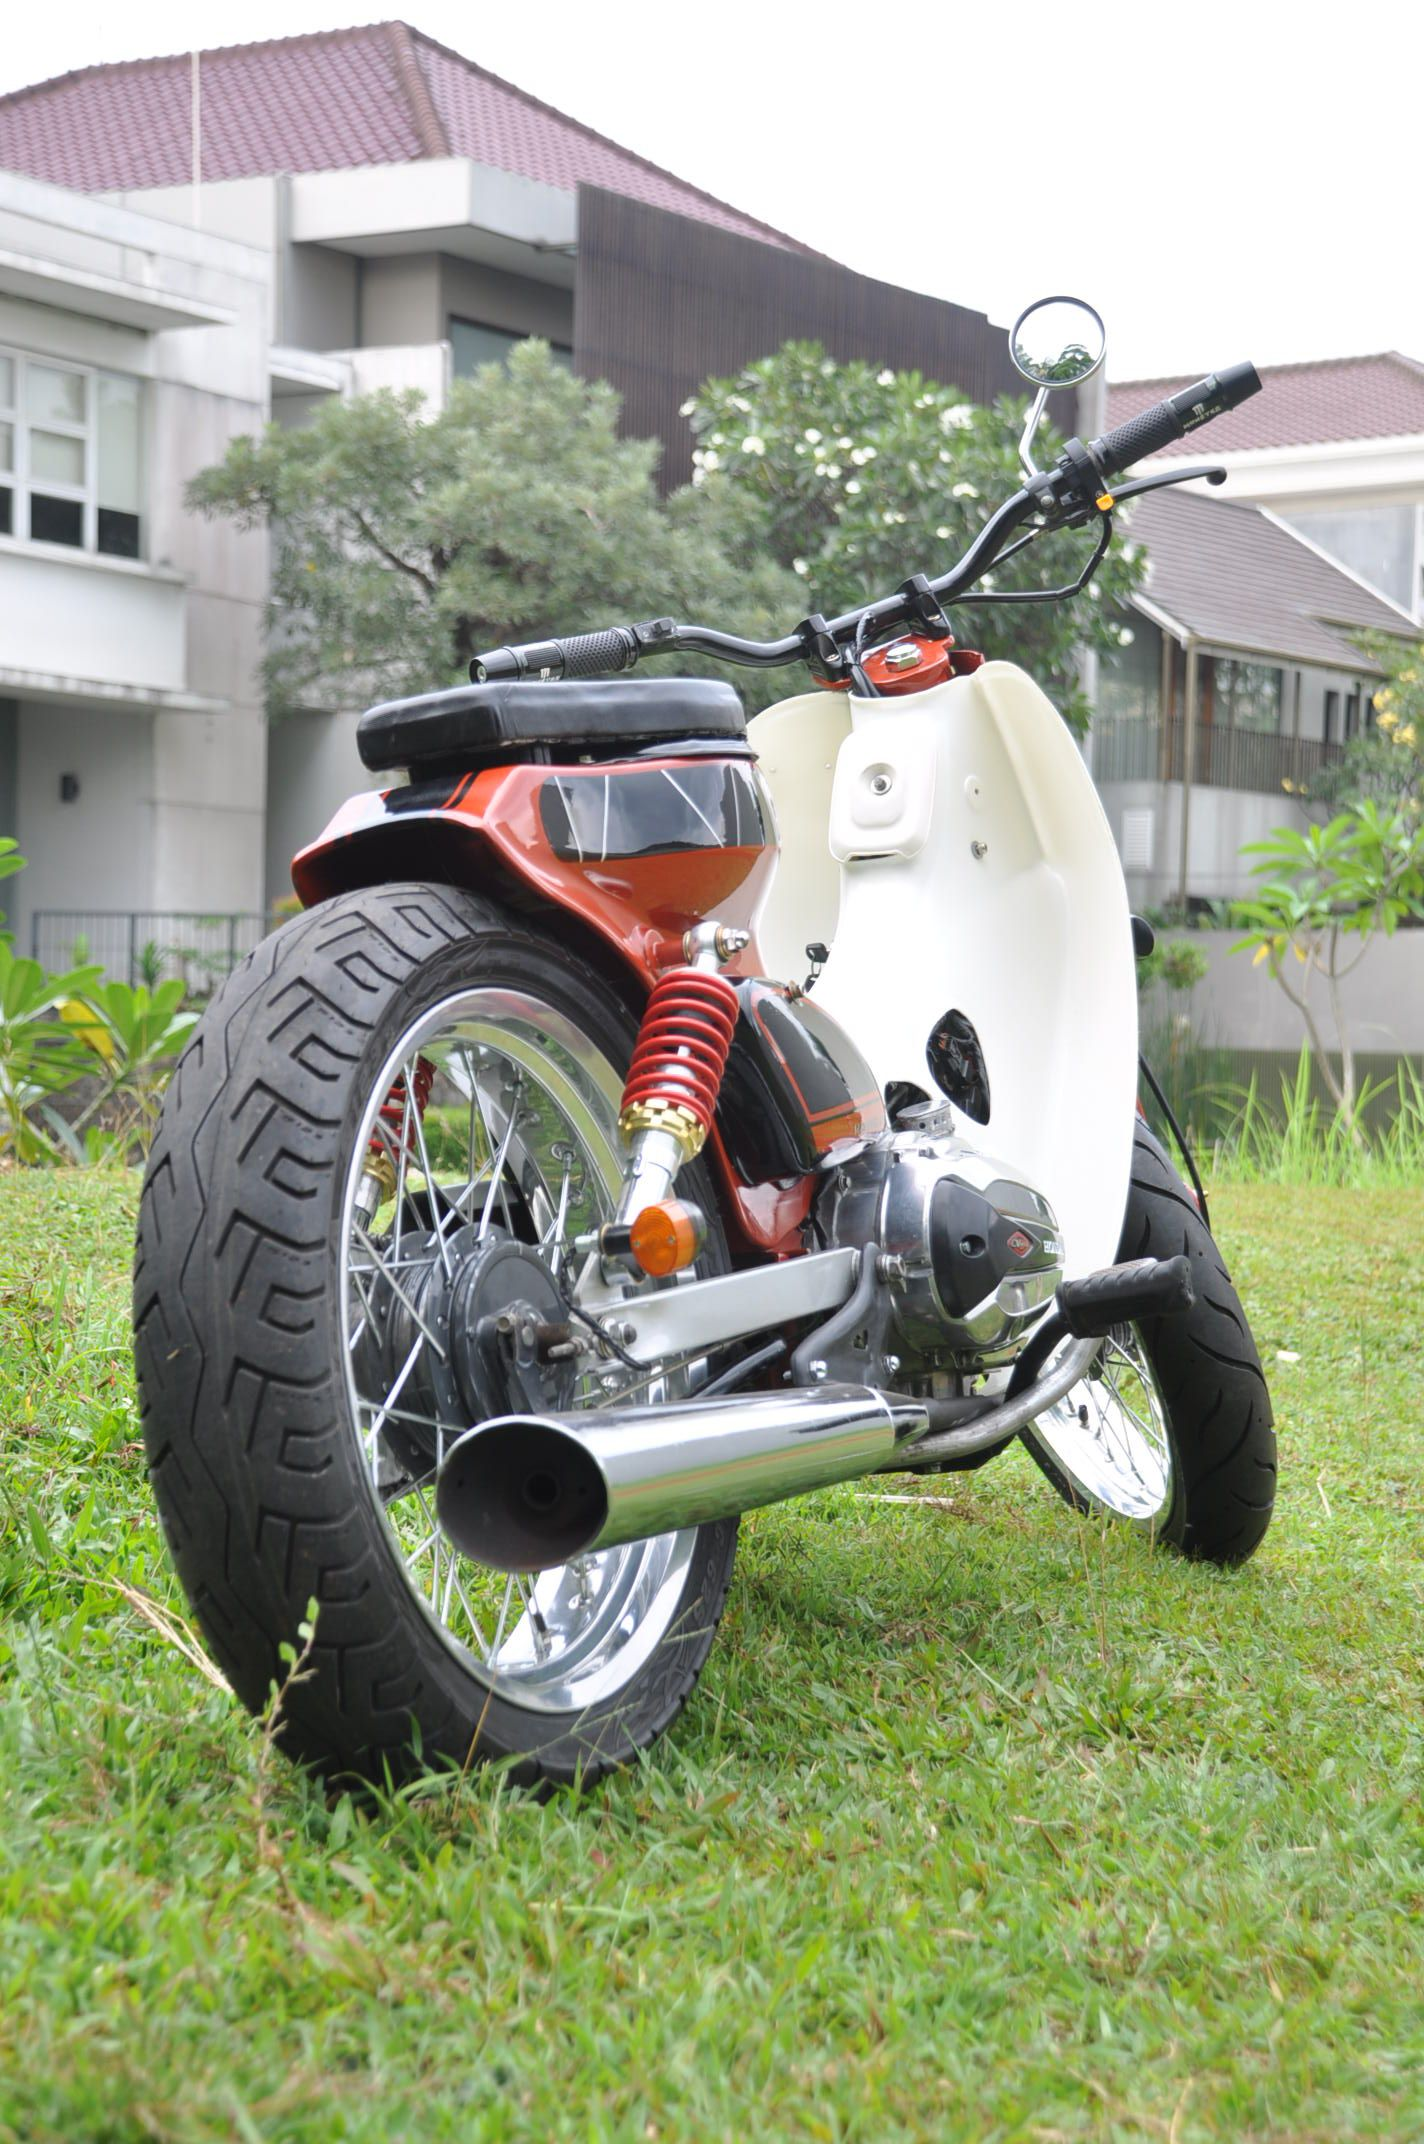 Matic street cub by newspeed garage motorcycle for Garage modification